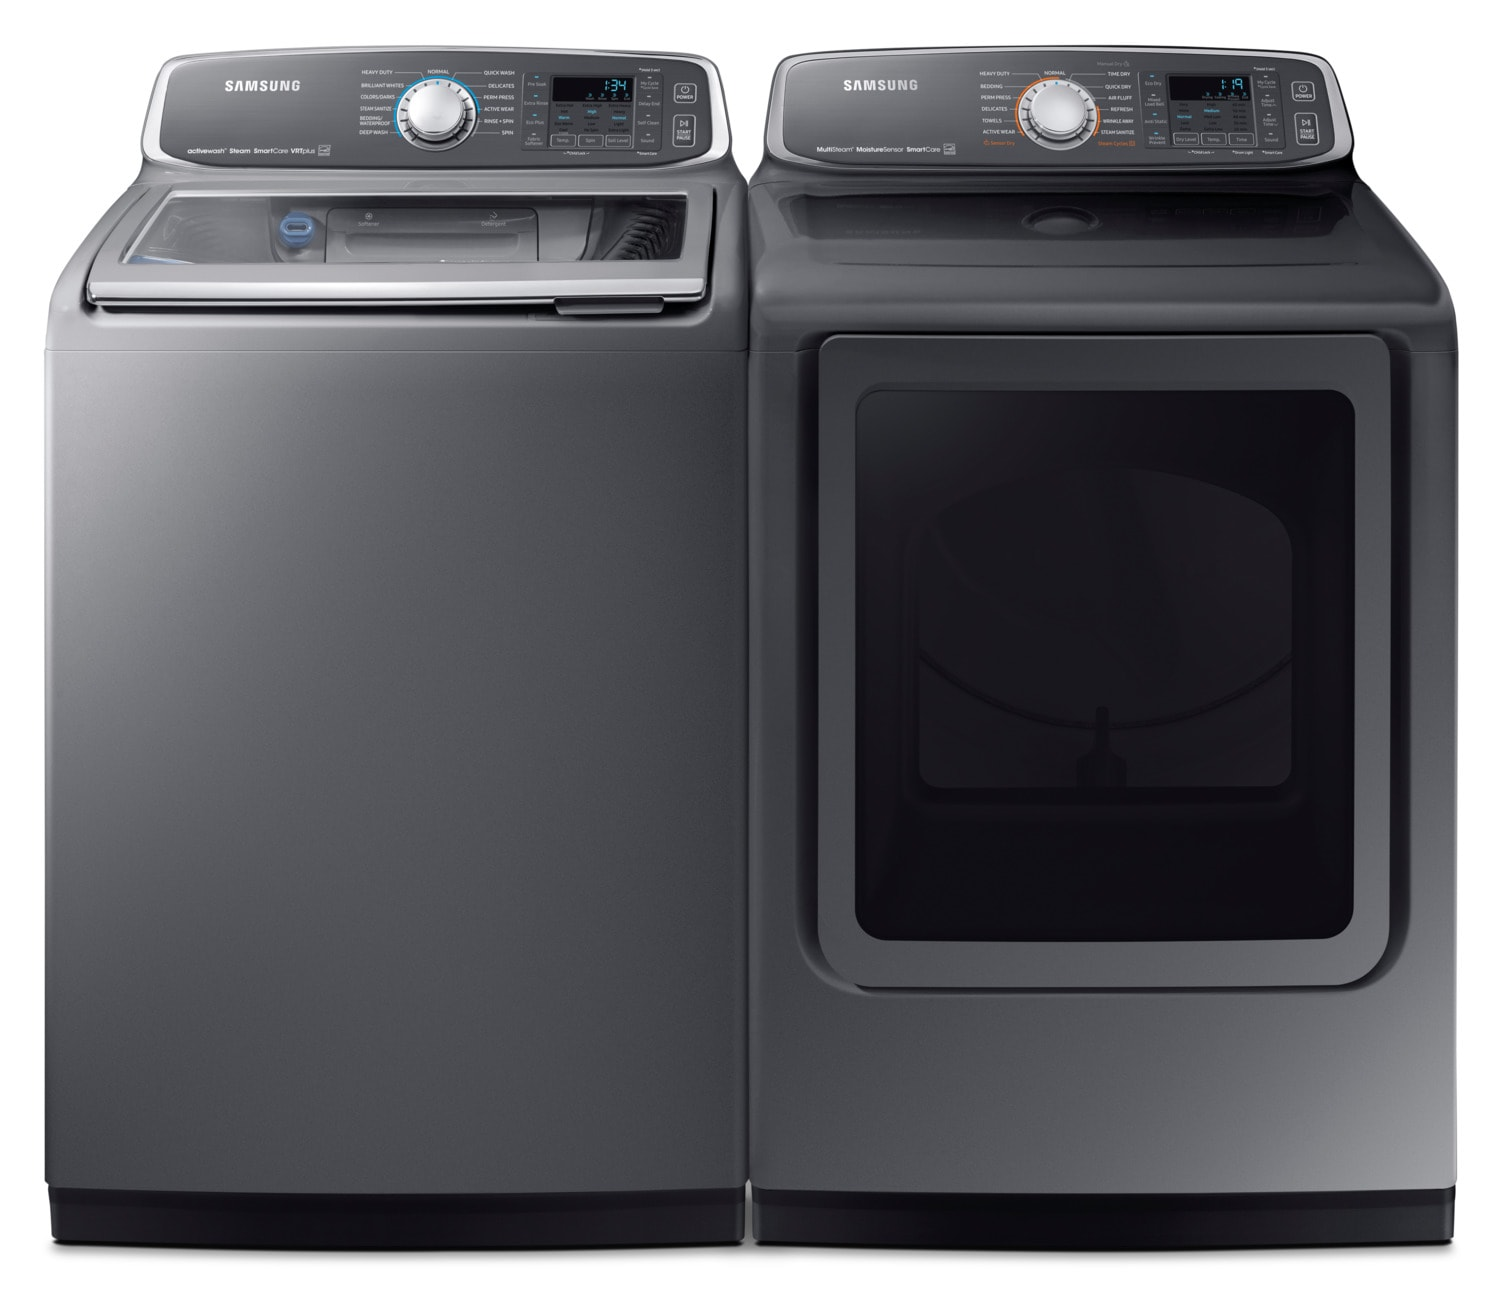 Samsung 6.0 Cu. Ft. Top-Load Washer and 7.4 Cu. Ft. Electric Dryer